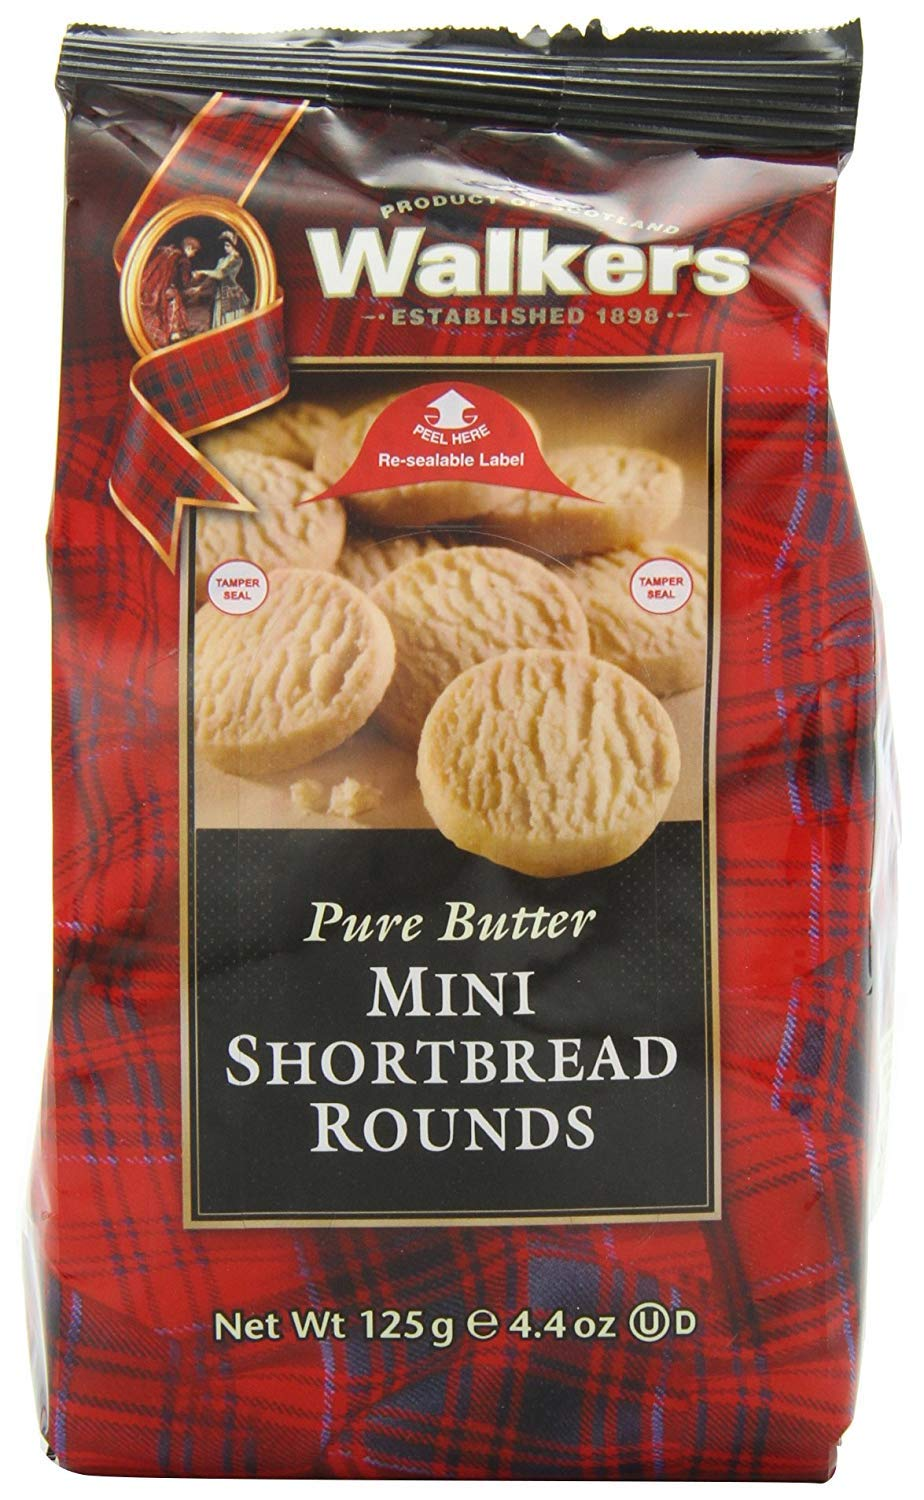 Walkers Shortbread Mini Shortbread Rounds, Traditional Pure Butter Shortbread Cookies, 4.4-Ounce Bags (6 Bags) by Walkers Shortbread